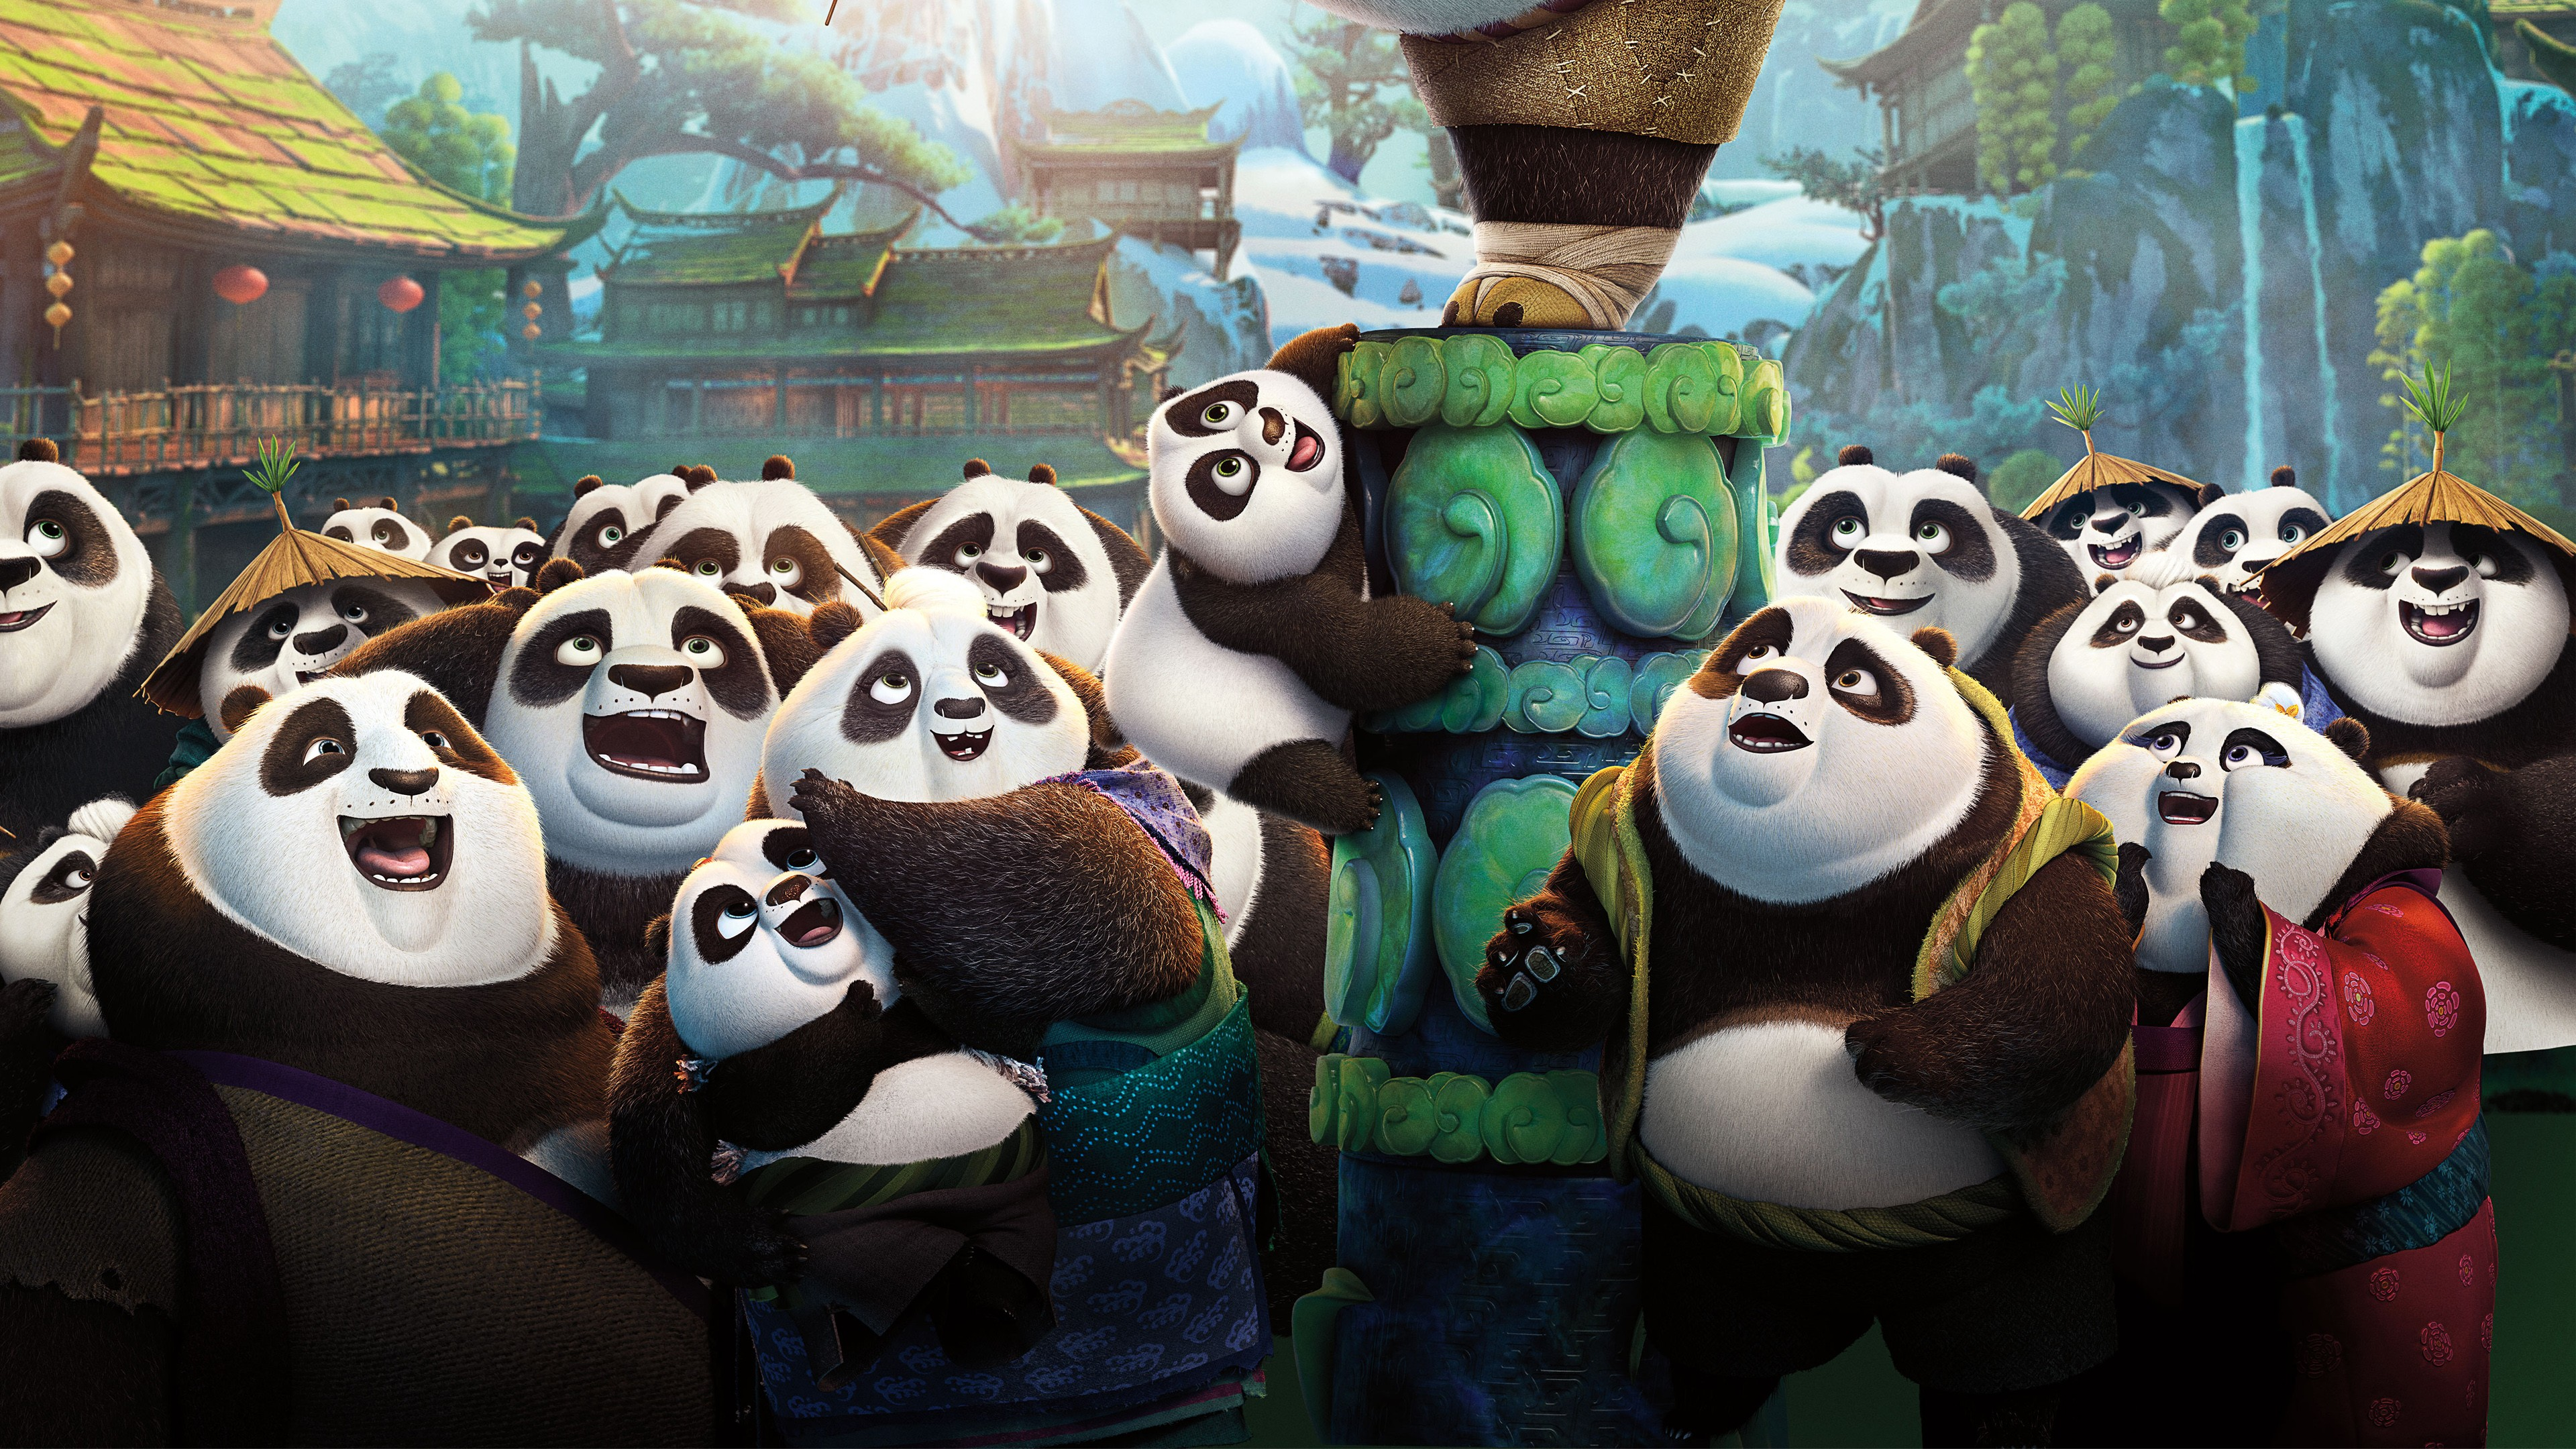 kung fu panda wallpapers, images, backgrounds, photos and pictures